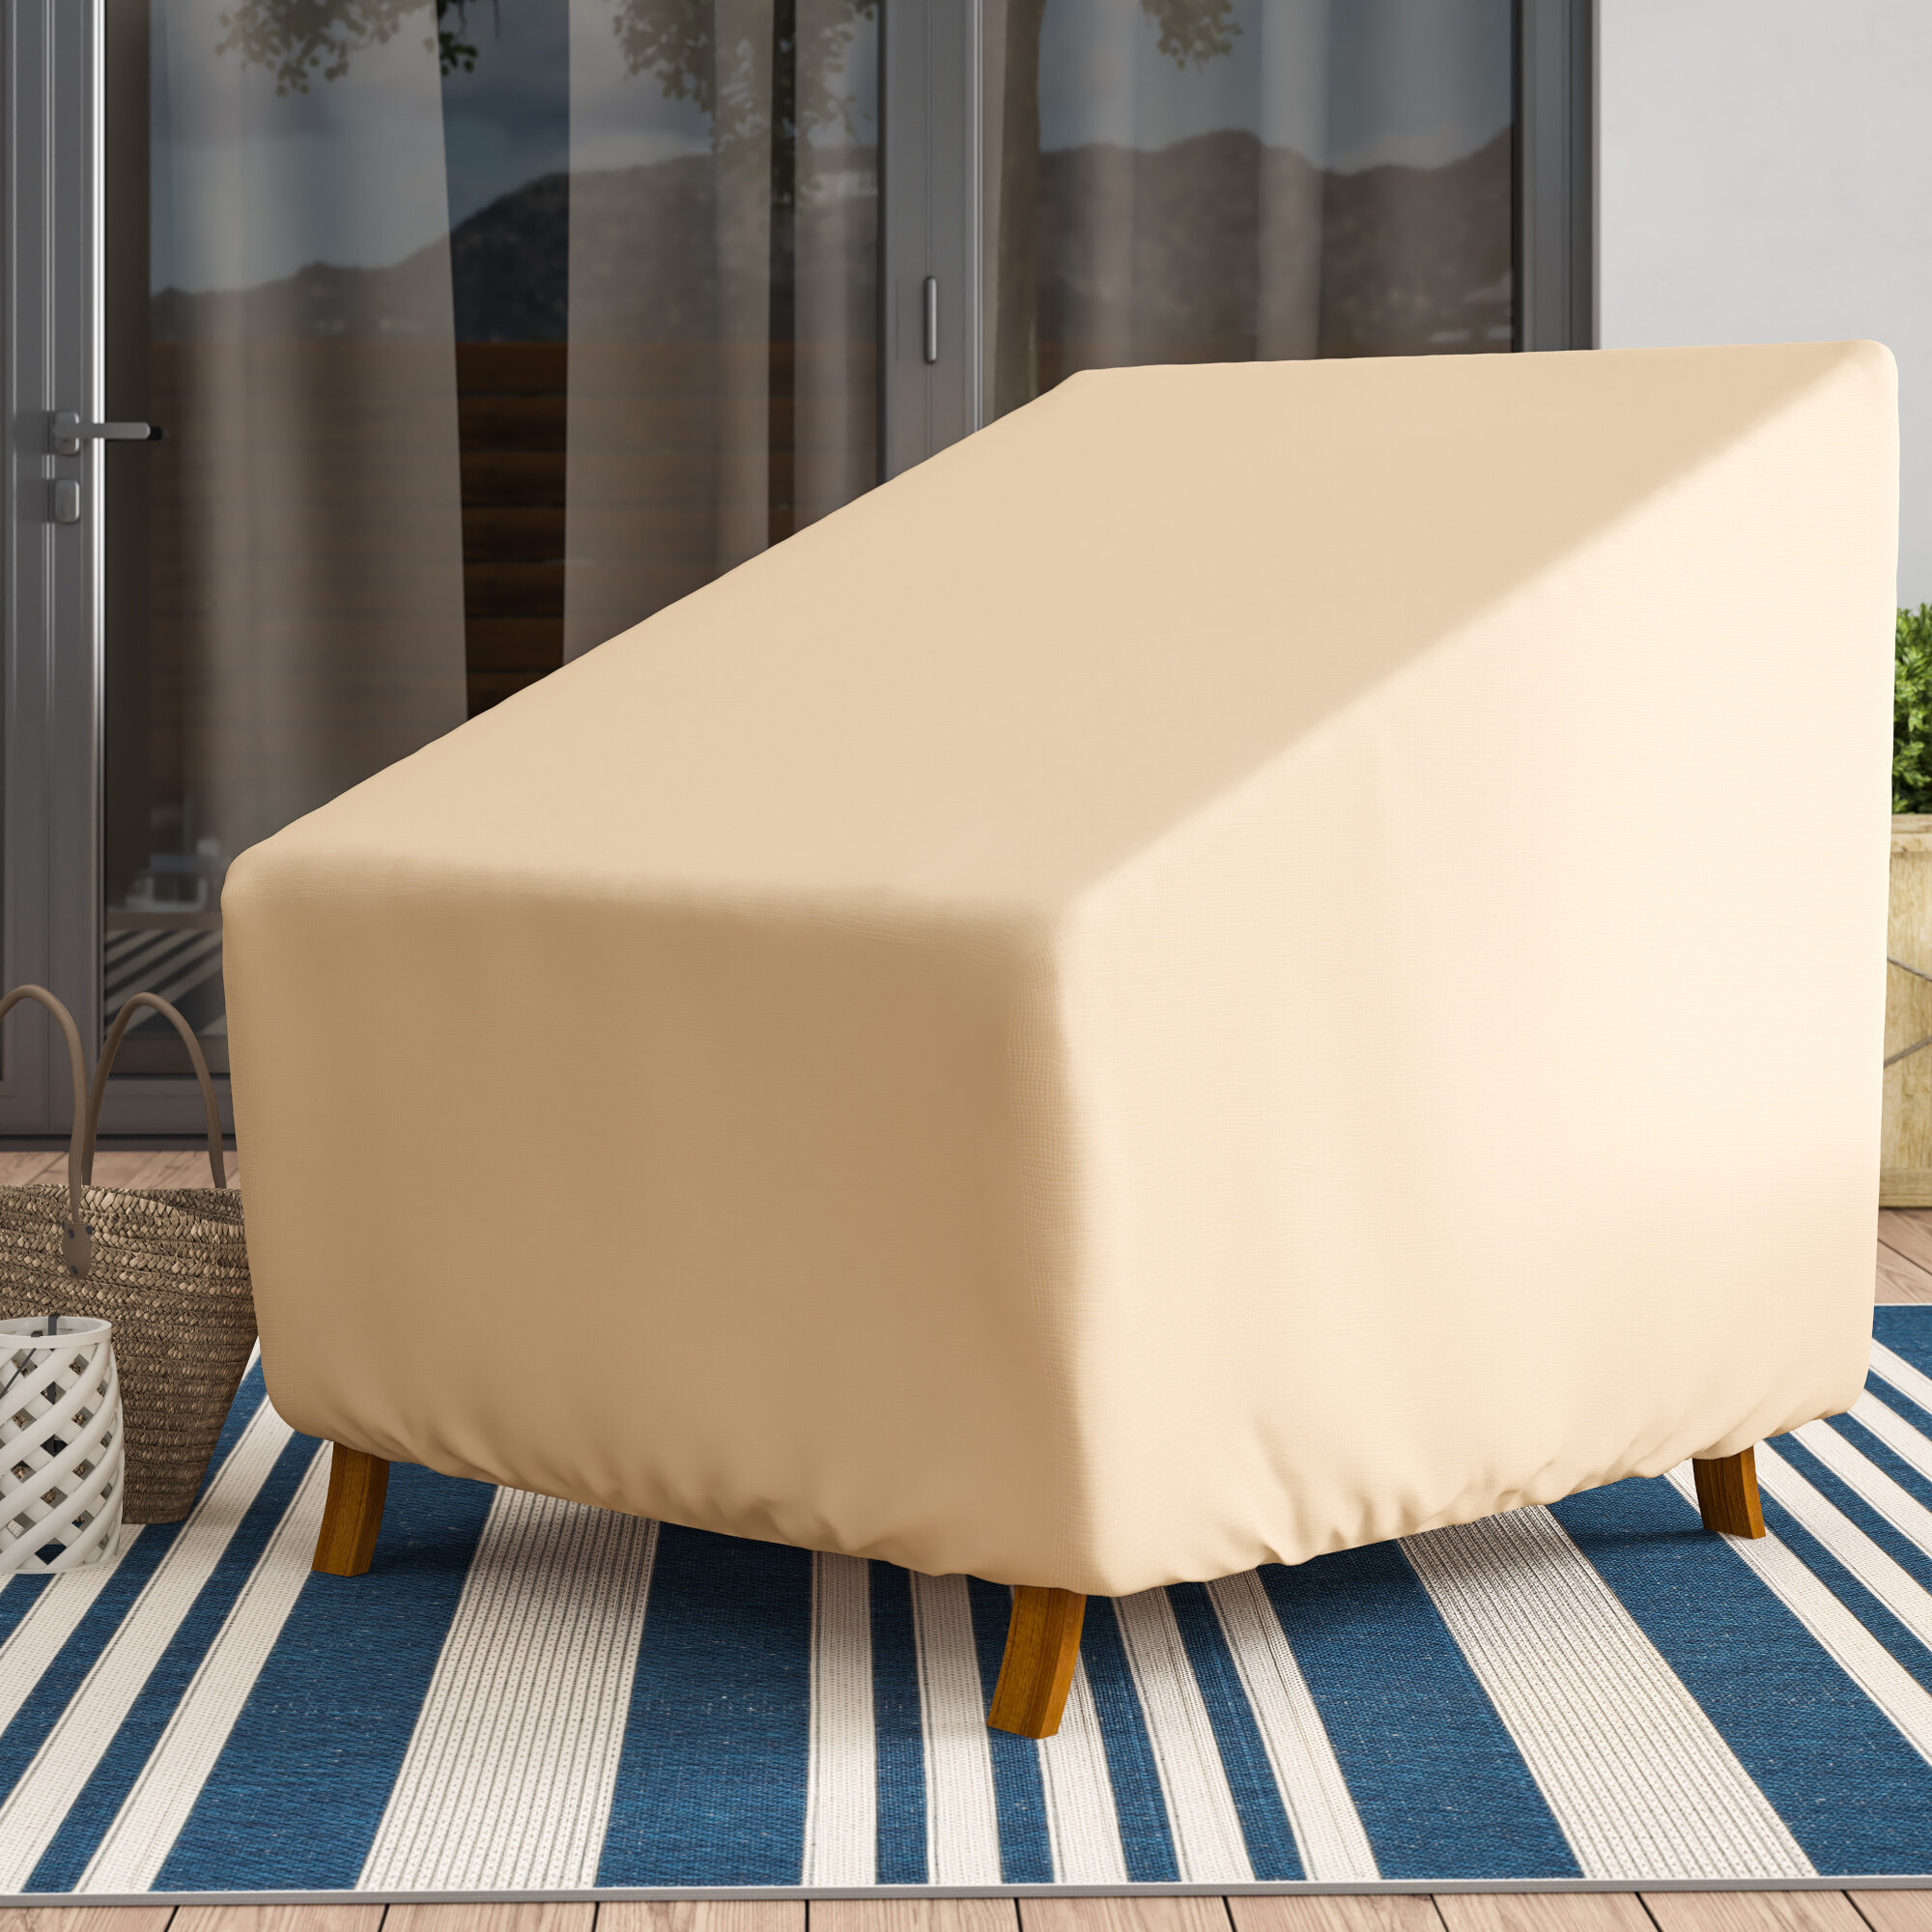 Breathable Outdoor Furniture Covers Elegant Patio Chair In regarding dimensions 2000 X 2000